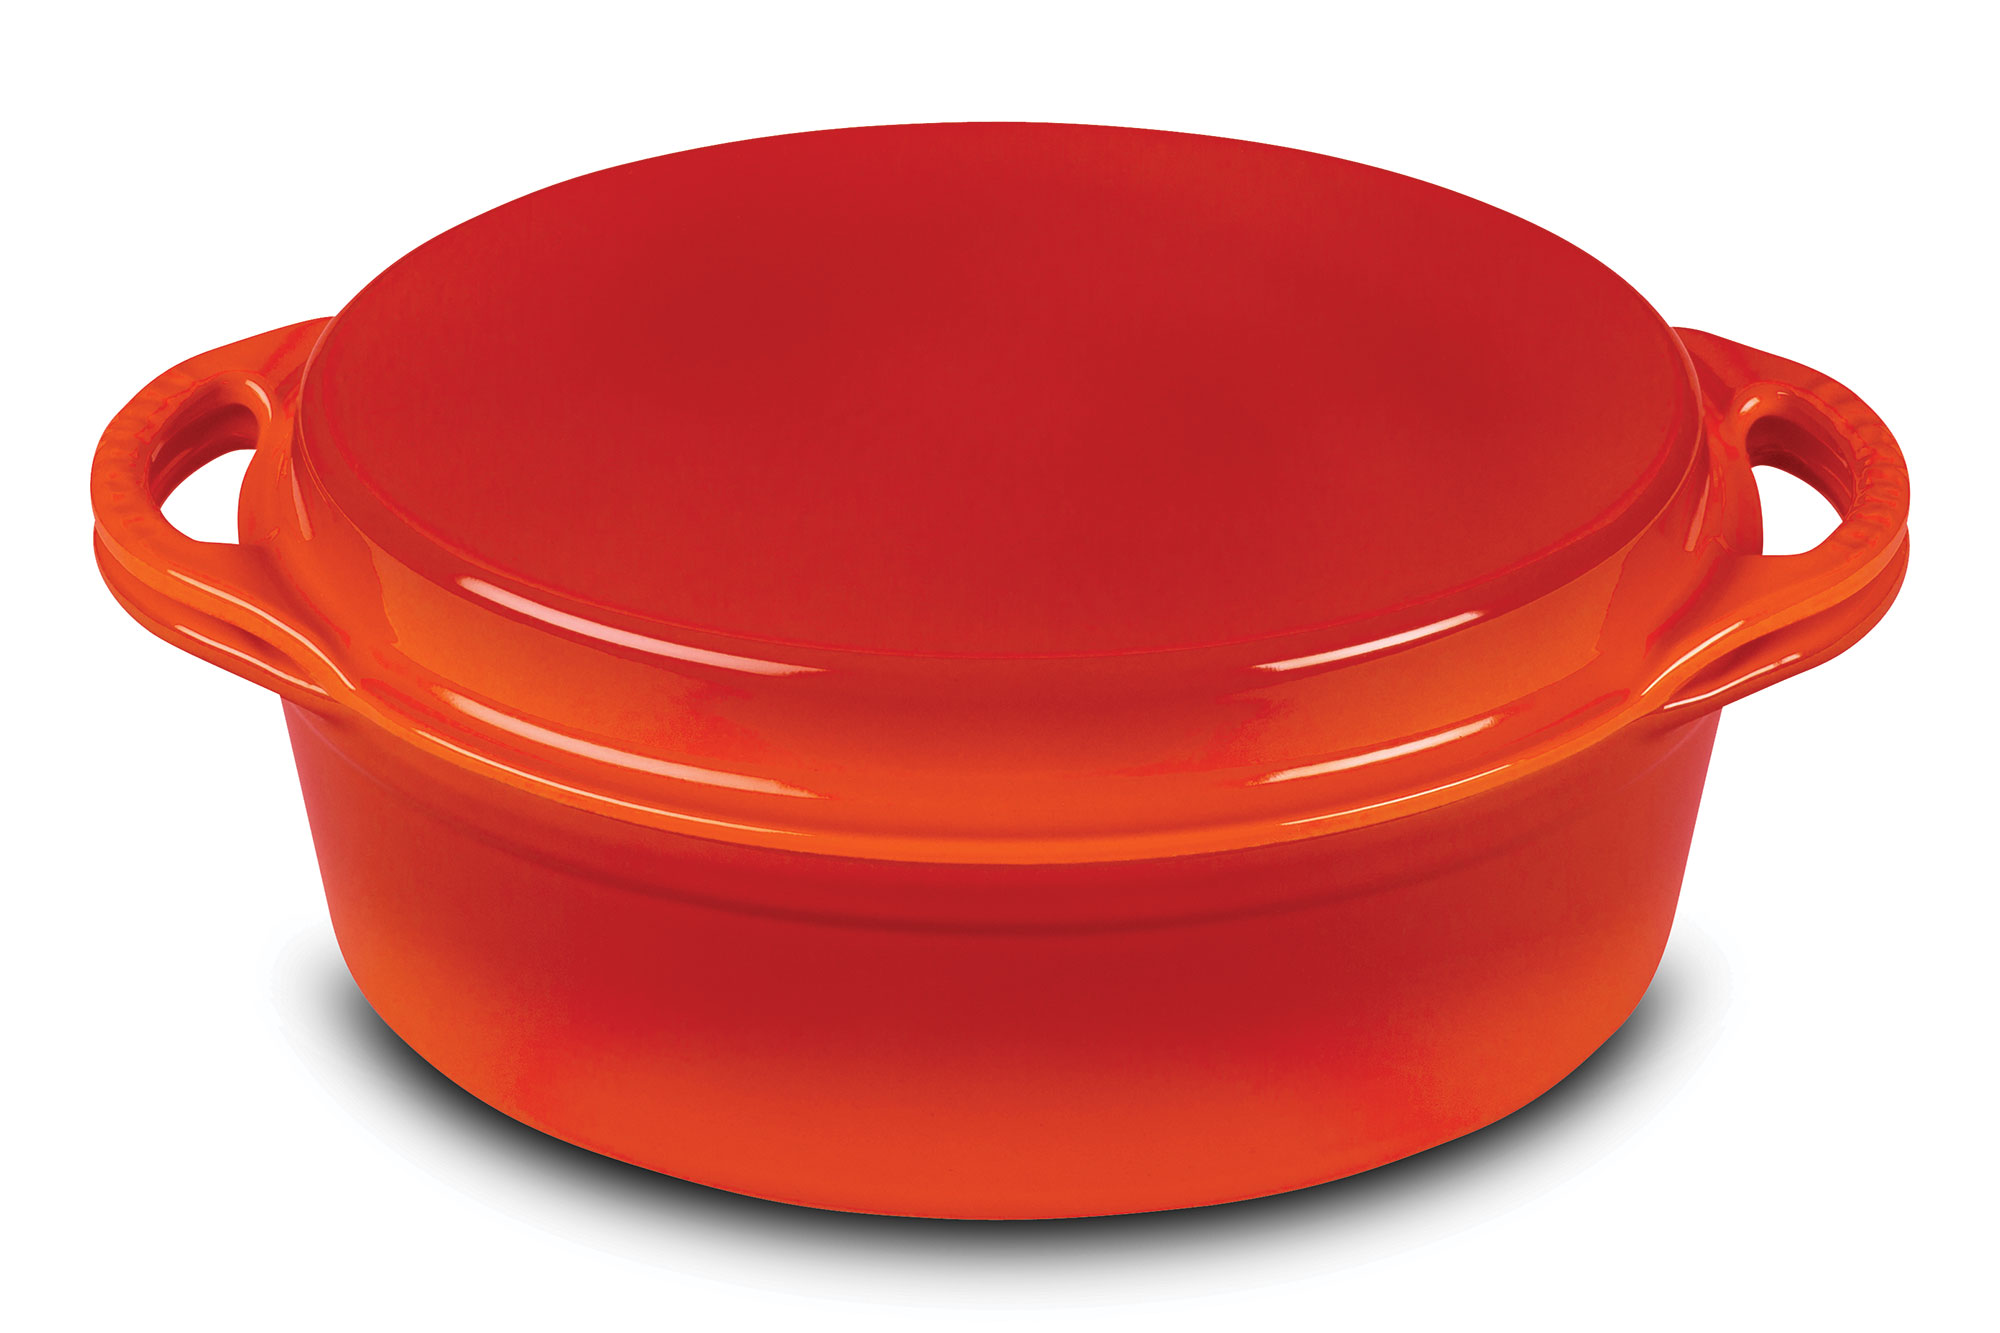 Le Creuset Cast Iron Oval Oven With Reversible Grill Pan